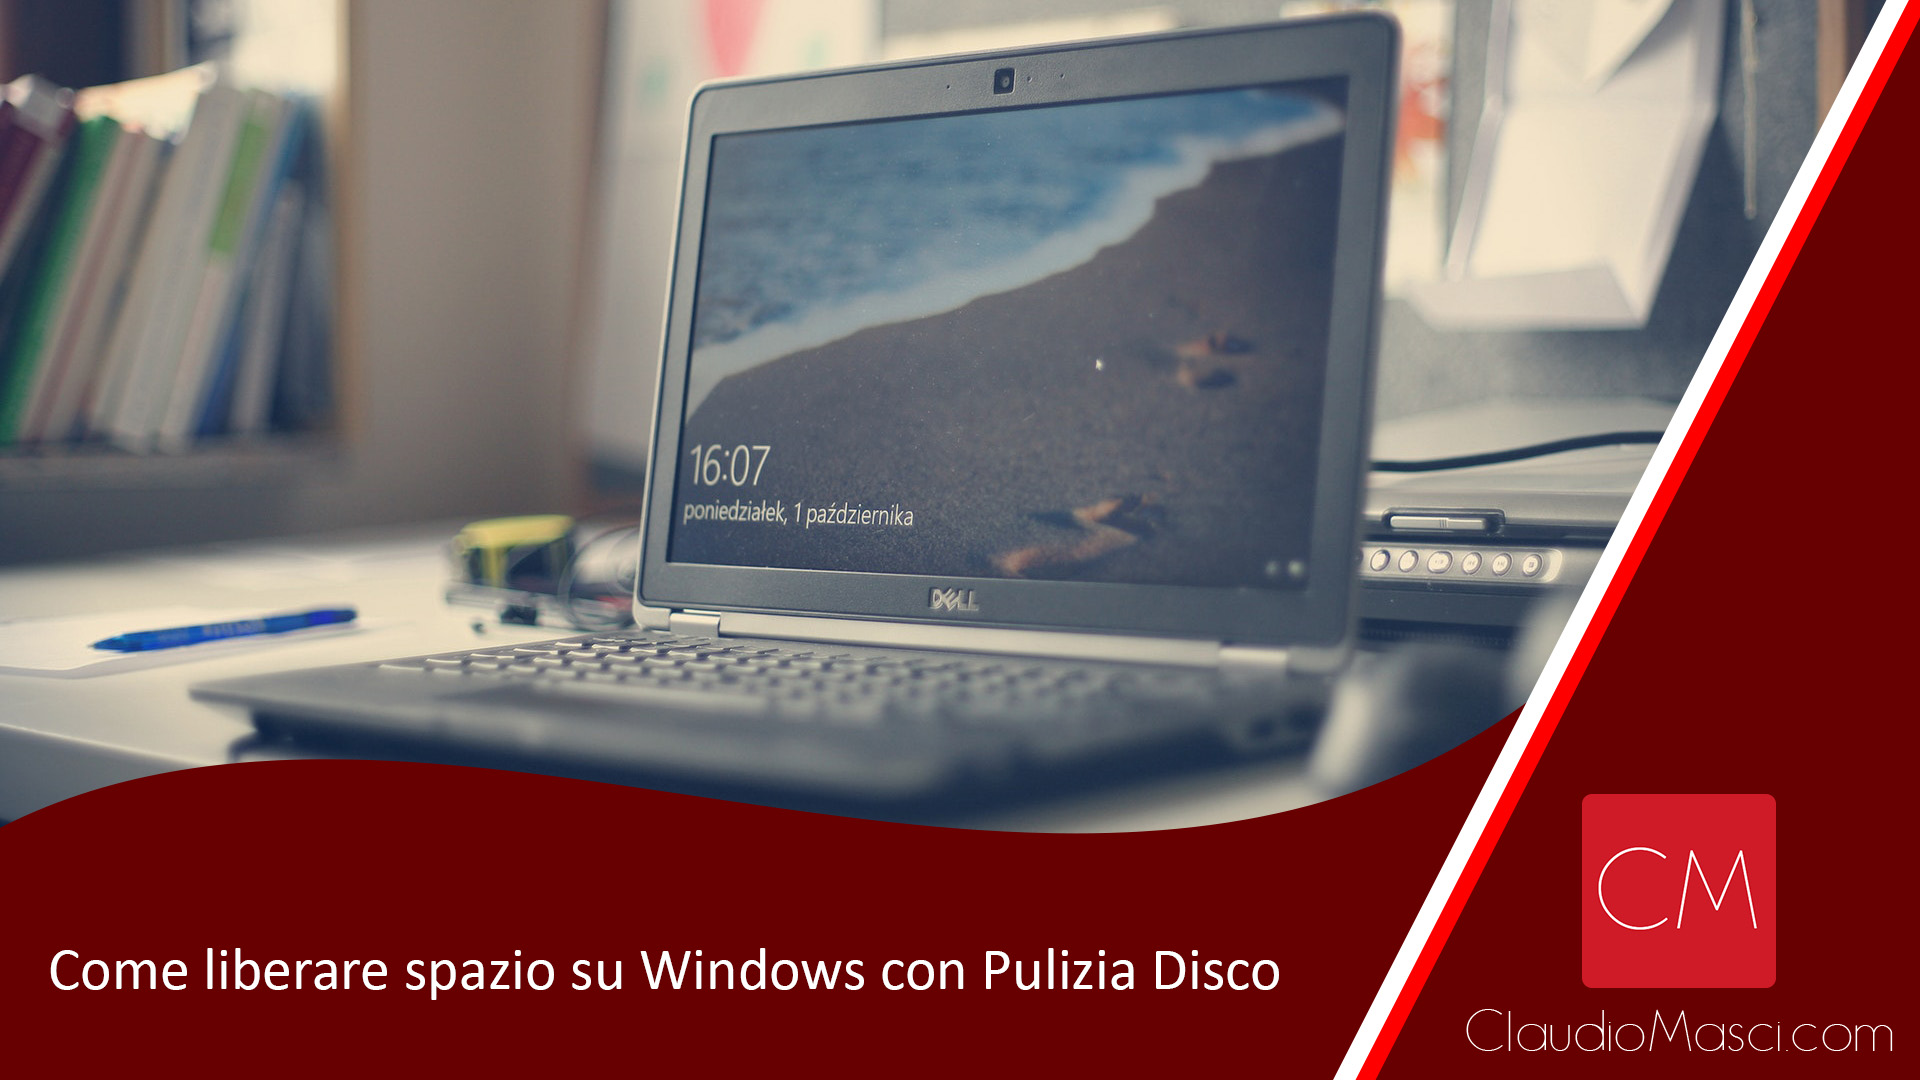 Liberare spazio su Windows con Pulizia Disco